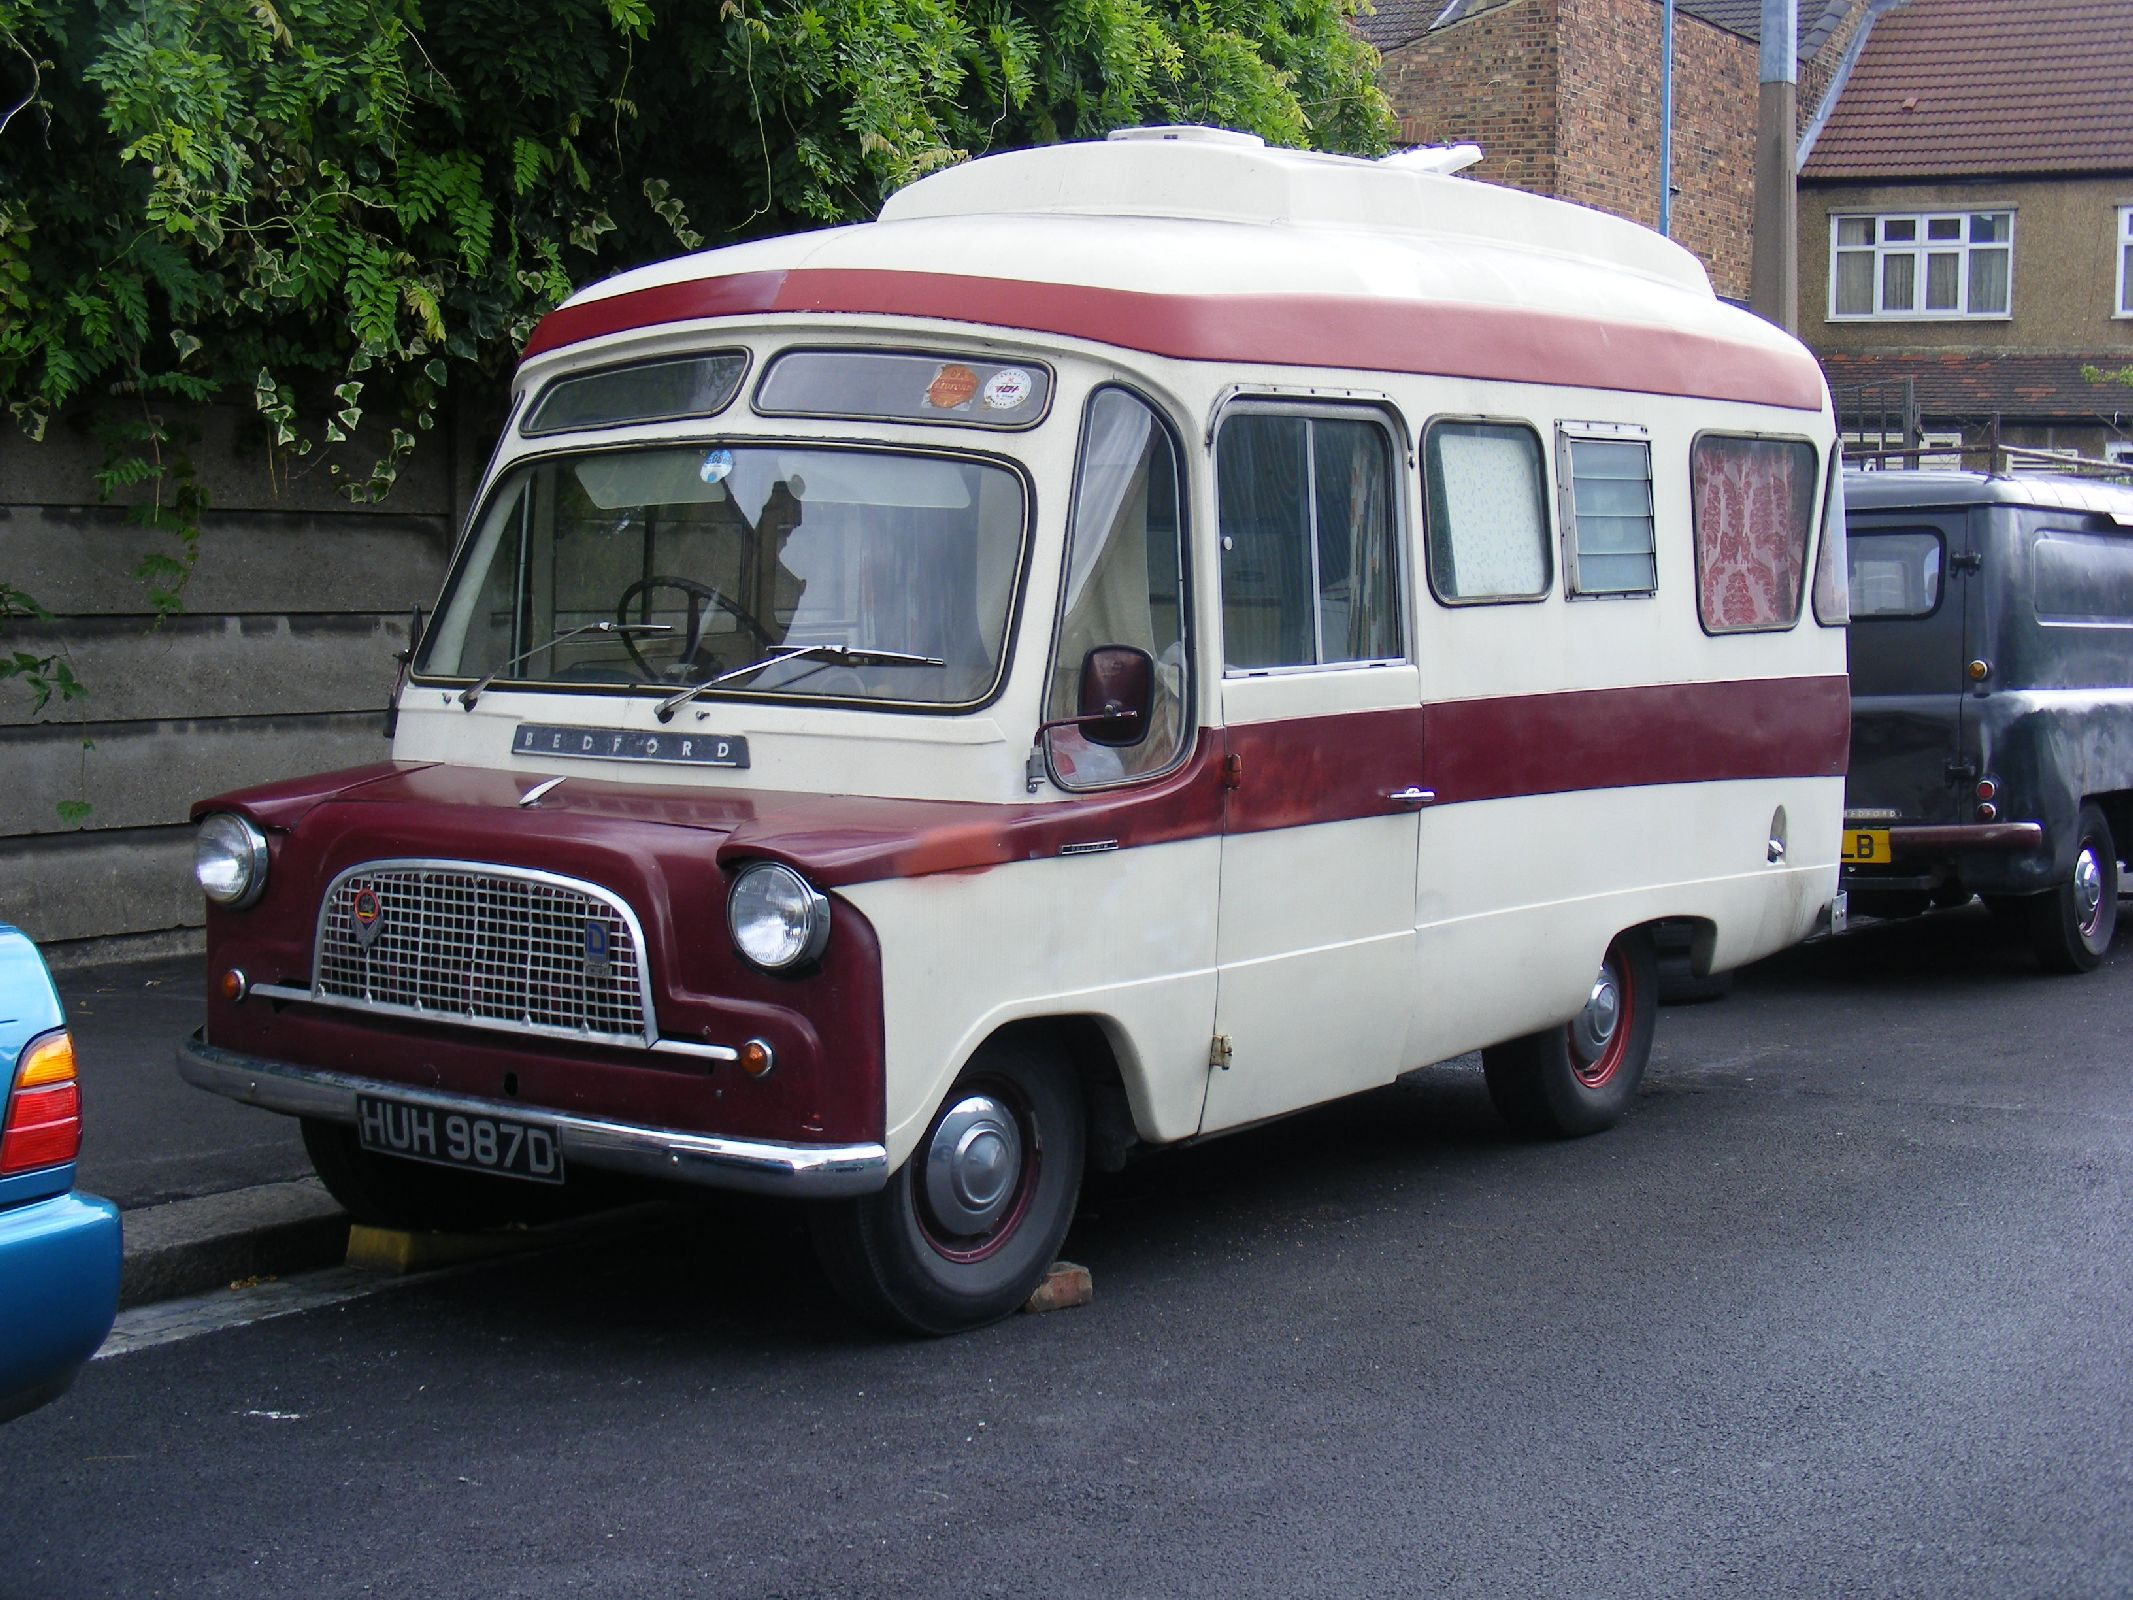 Campervans For Sale >> File:Bedford CA camper, E10 - Flickr - sludgegulper.jpg ...